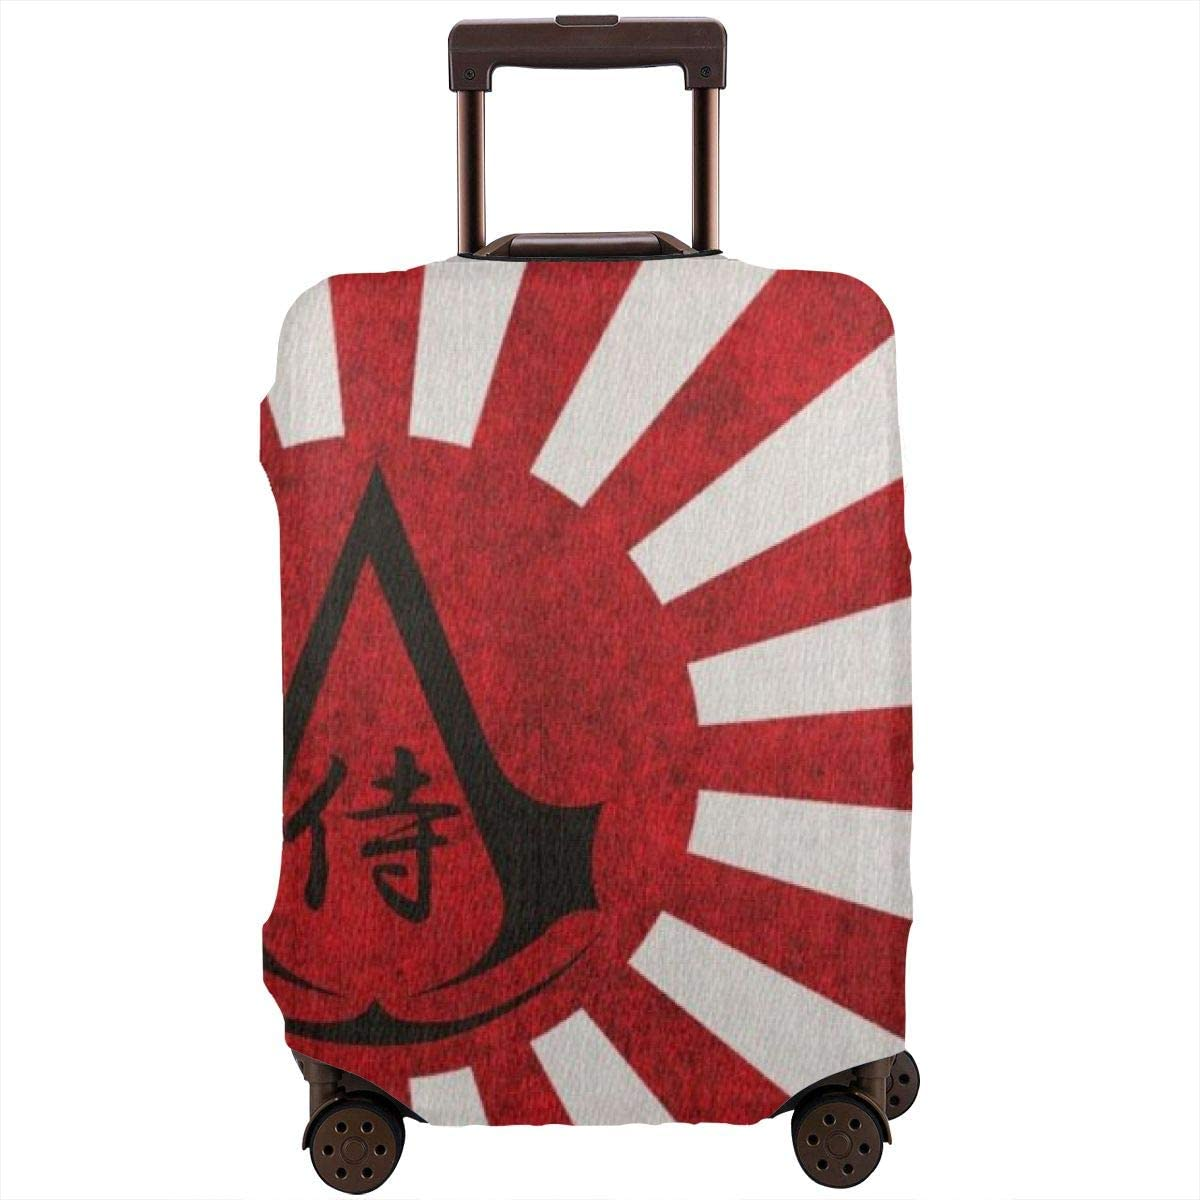 Japanese Assassins Creed Suitcase Protector Travel Luggage Cover Fit